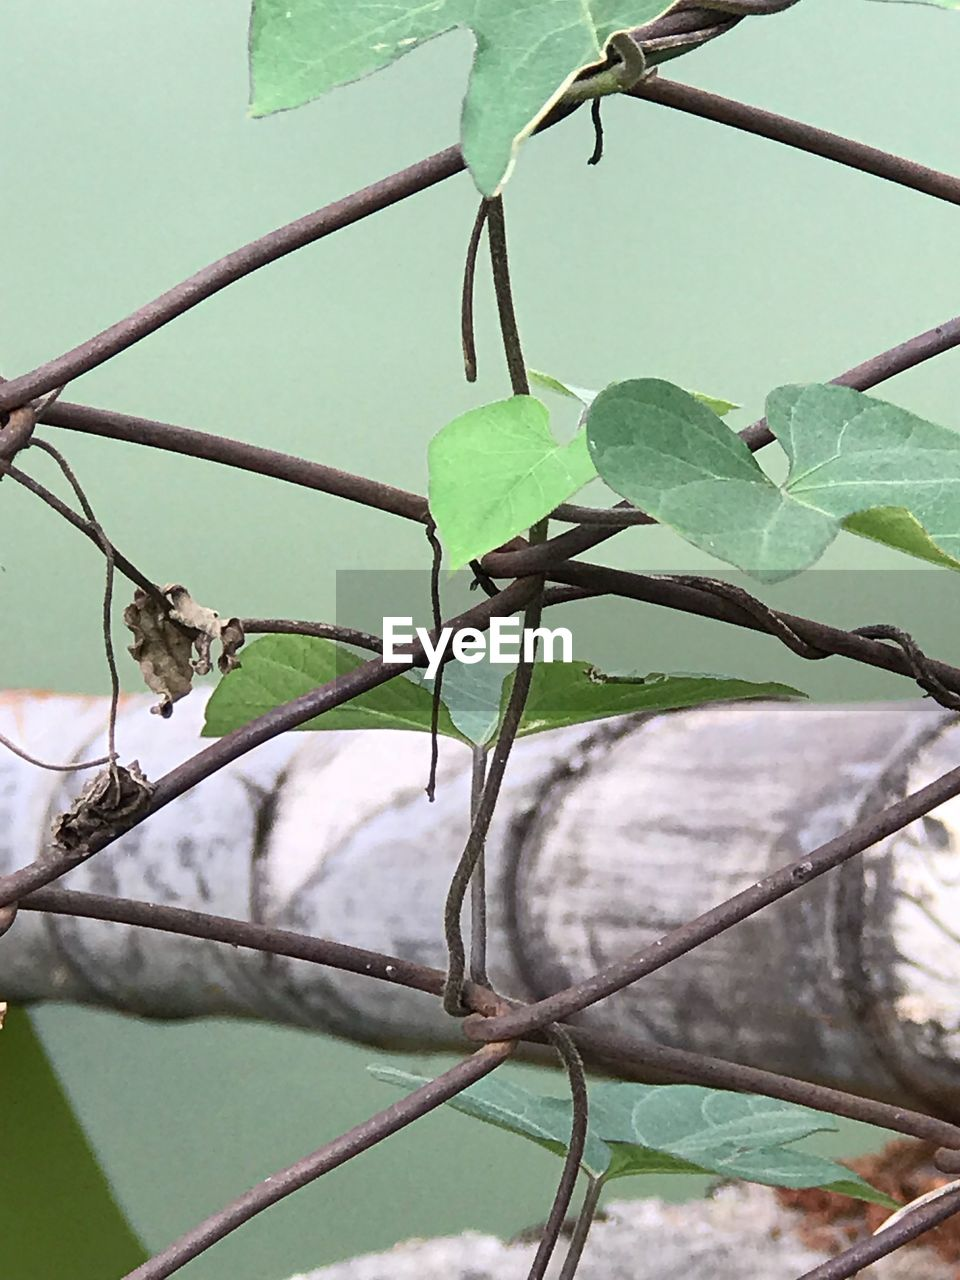 plant, leaf, plant part, no people, animal themes, nature, animal, green color, animal wildlife, close-up, branch, growth, tree, animals in the wild, day, one animal, focus on foreground, outdoors, plant stem, protection